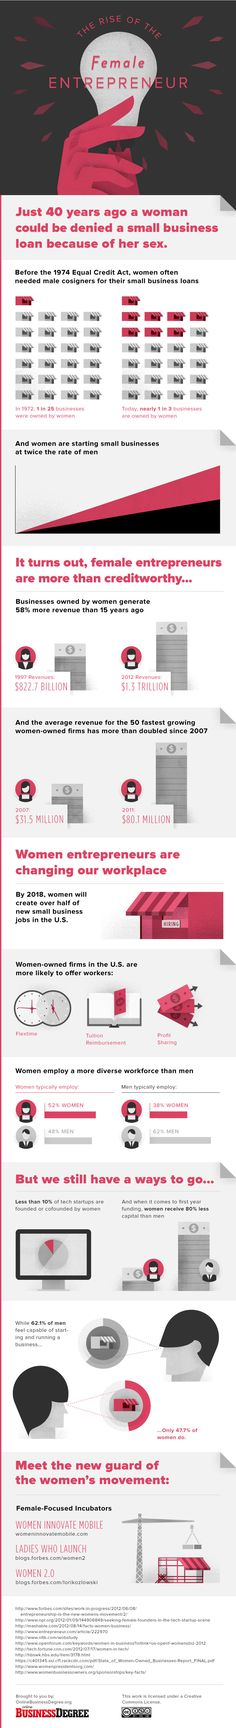 I like focusing on the positive! While professional women still have some serious obstacles to overcome, just look at what has changed in the last 40 years! This infographic really puts it into perspective. The Rise of the Female Entrepreneur